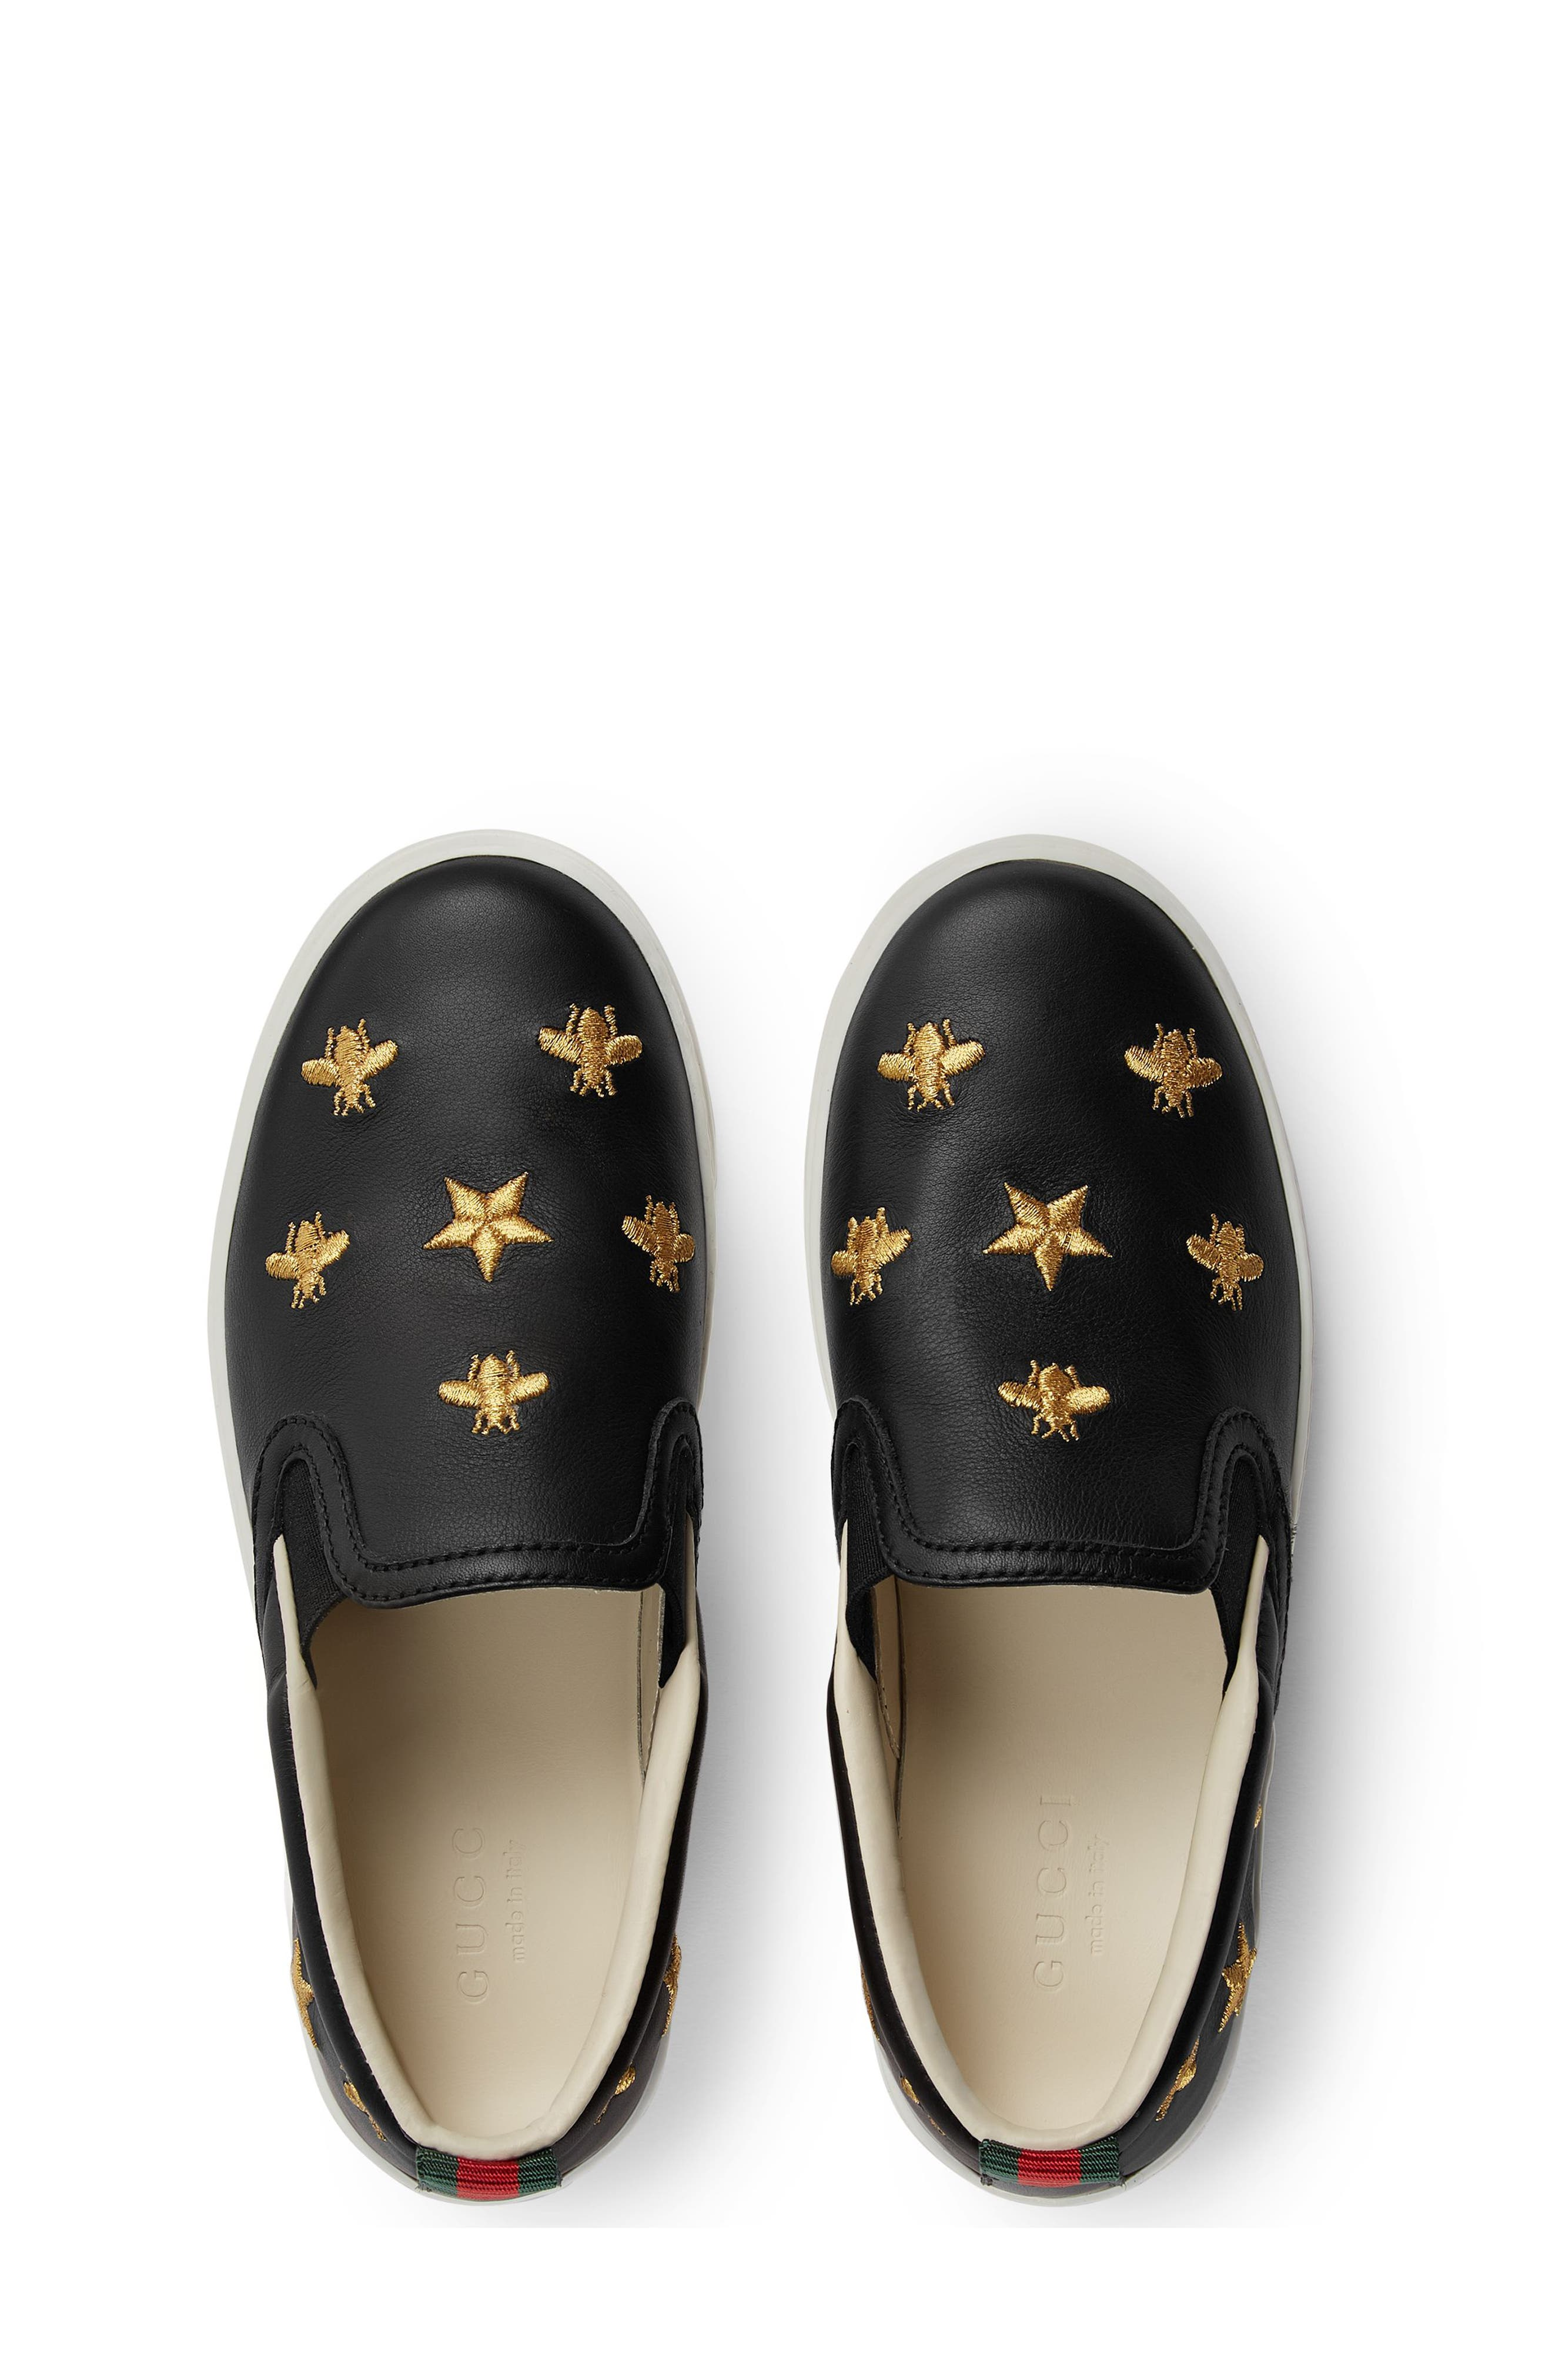 Dublin Bees and Stars Slip-On Sneaker,                             Alternate thumbnail 4, color,                             BLACK/GOLD STARS